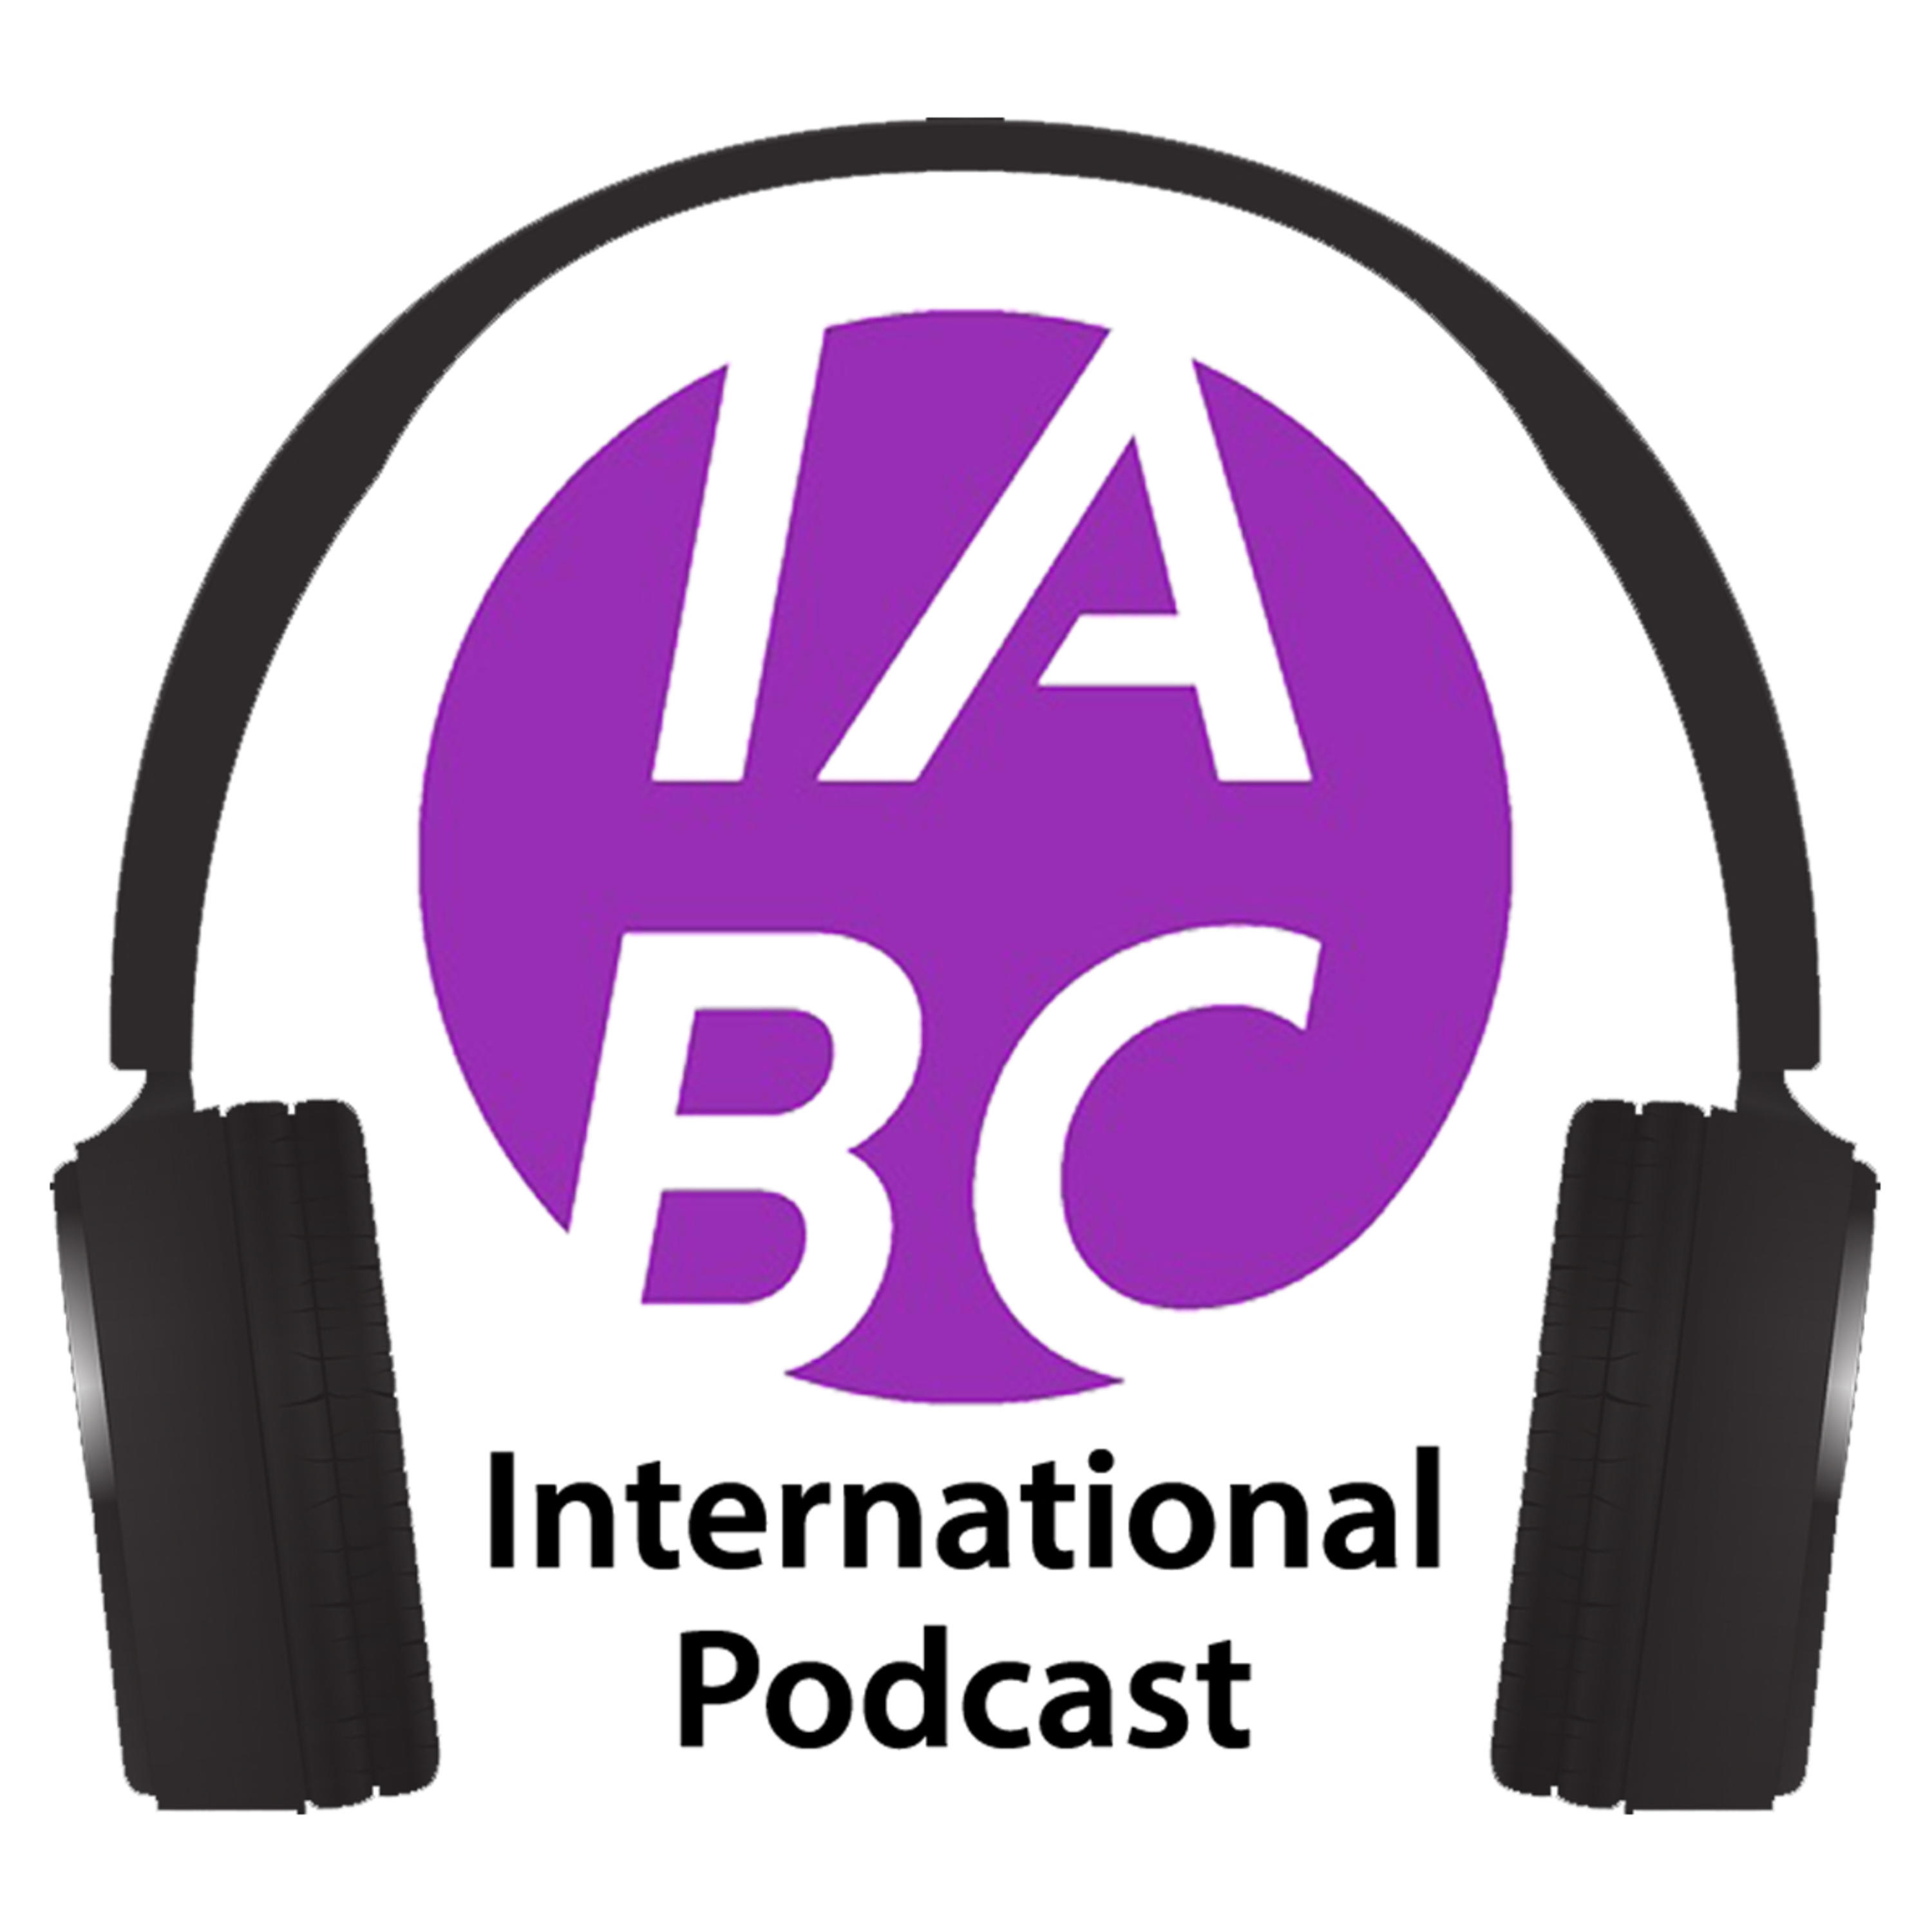 Global influencer and thought leader Diane Gayeski on her IABC Fellowship. Ep. 222